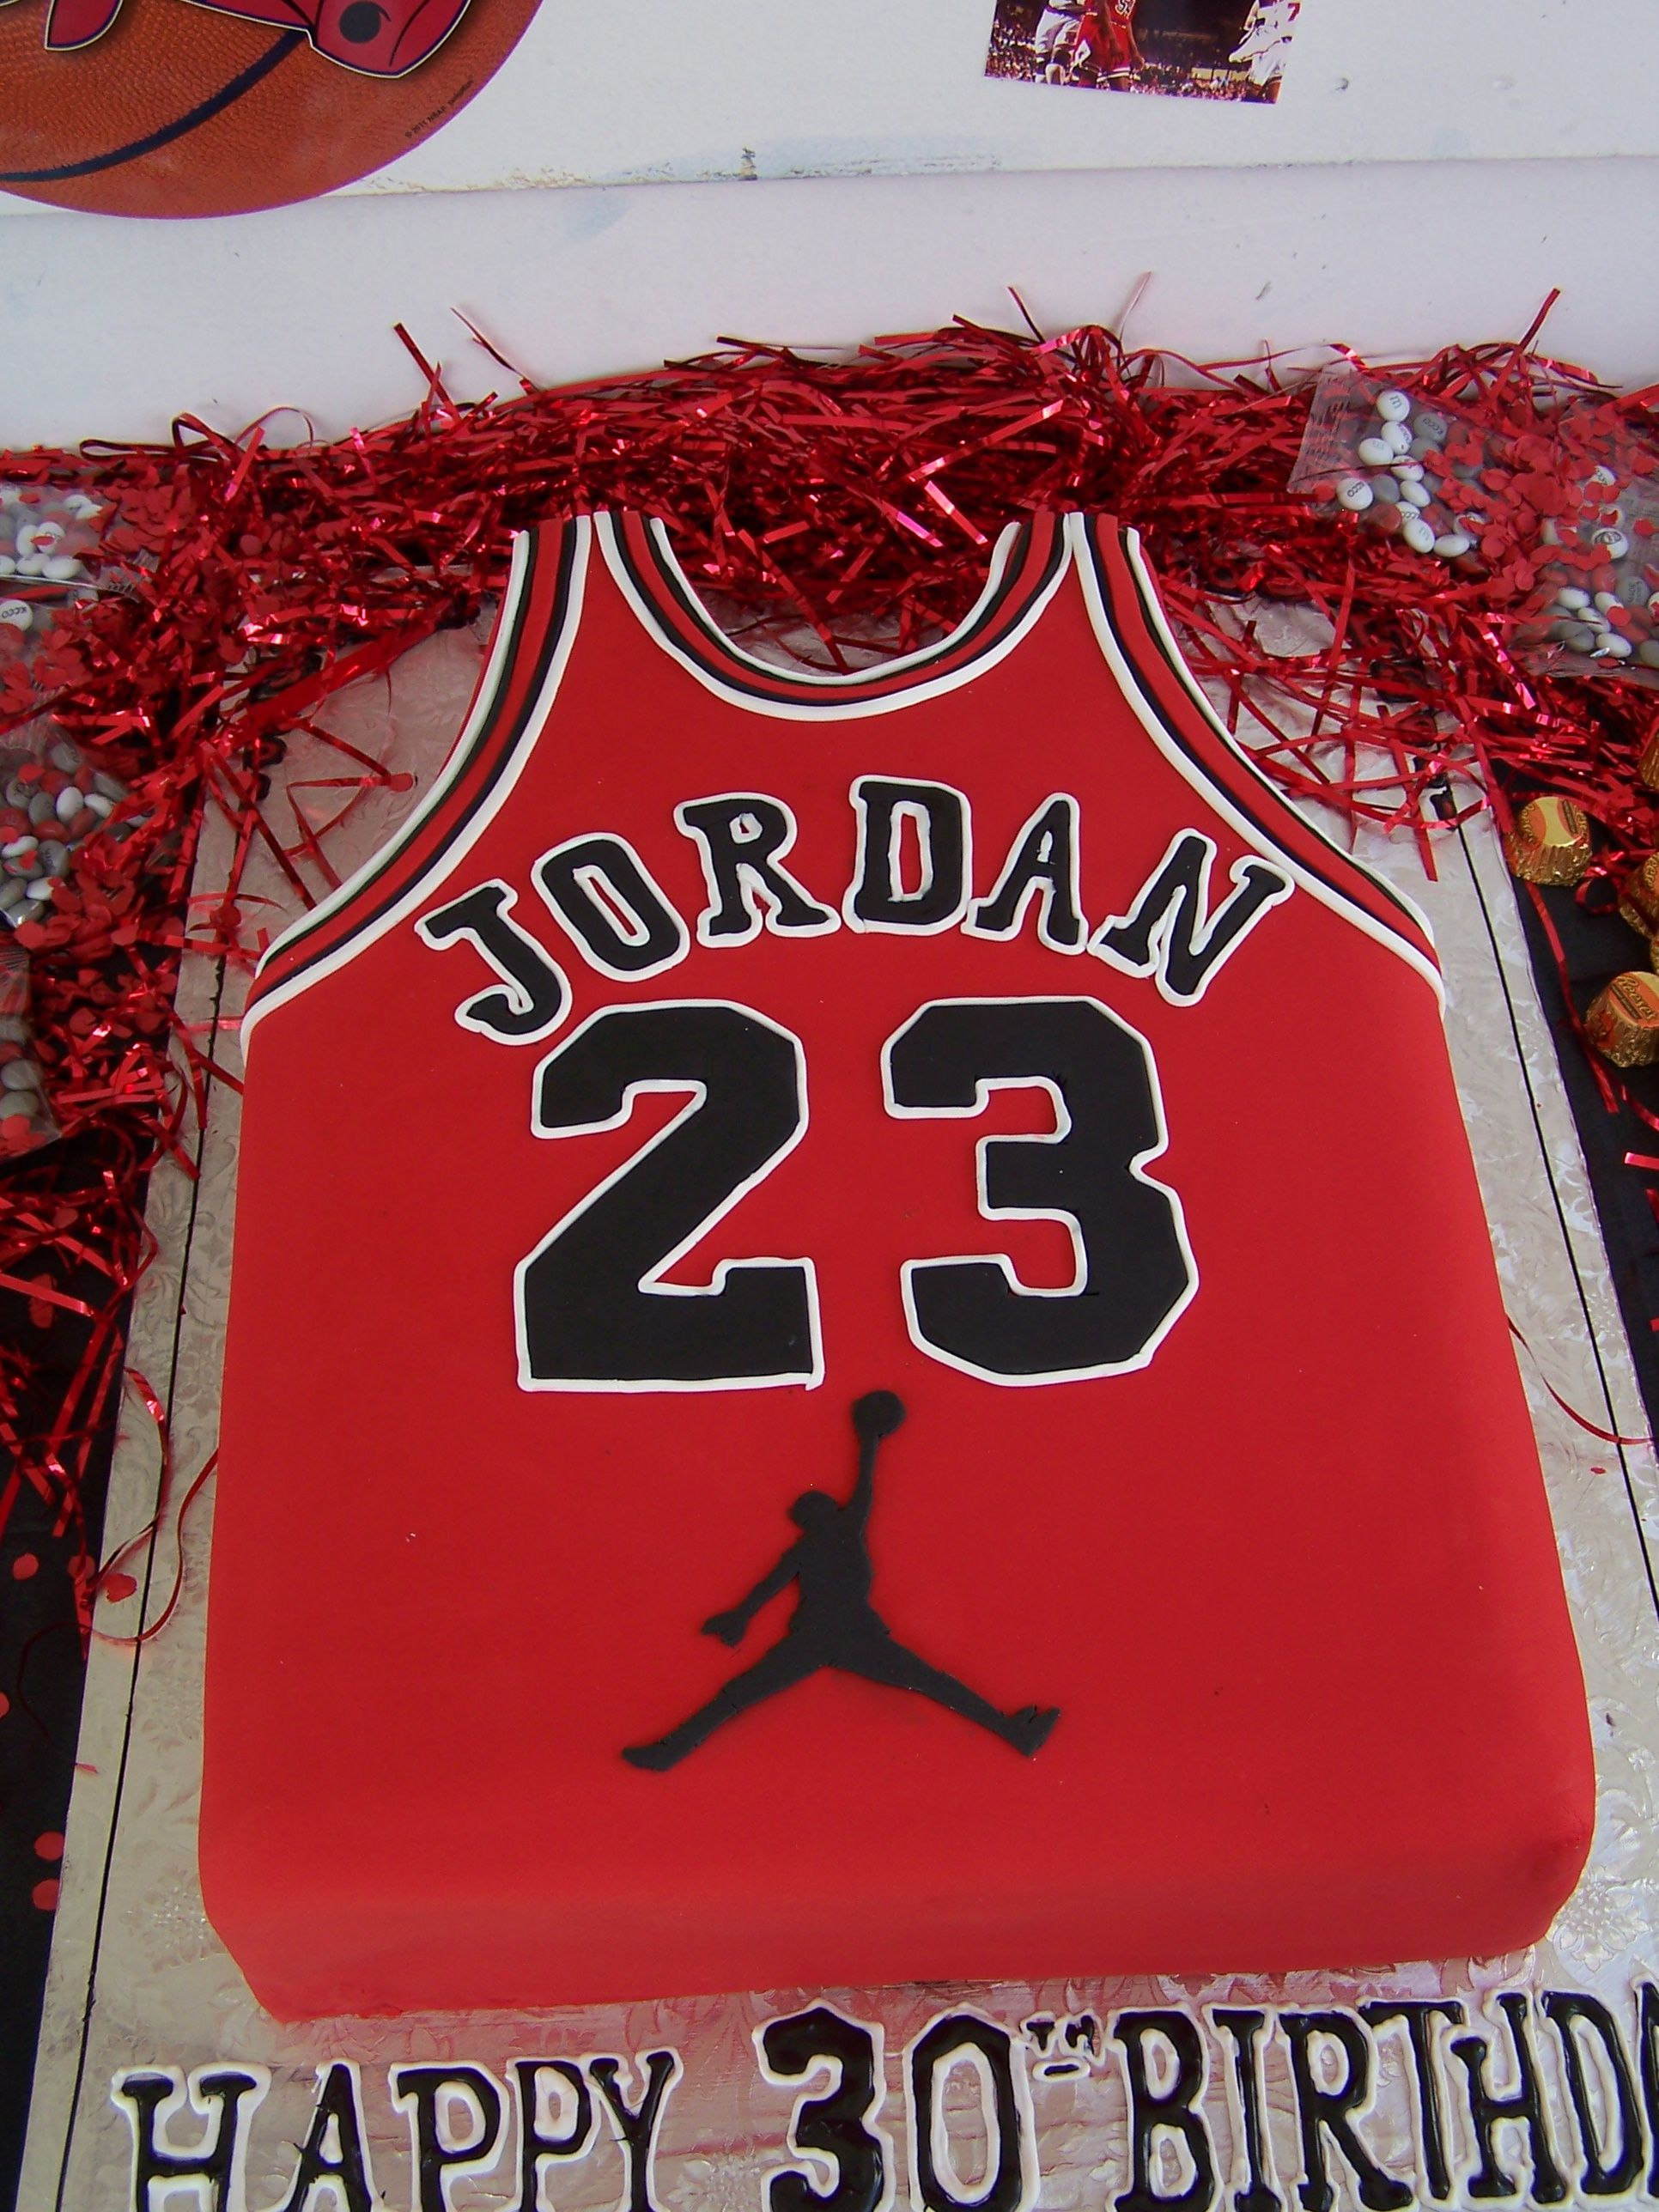 Fantastic Michael Jordan jersey cake for a 30th birthday